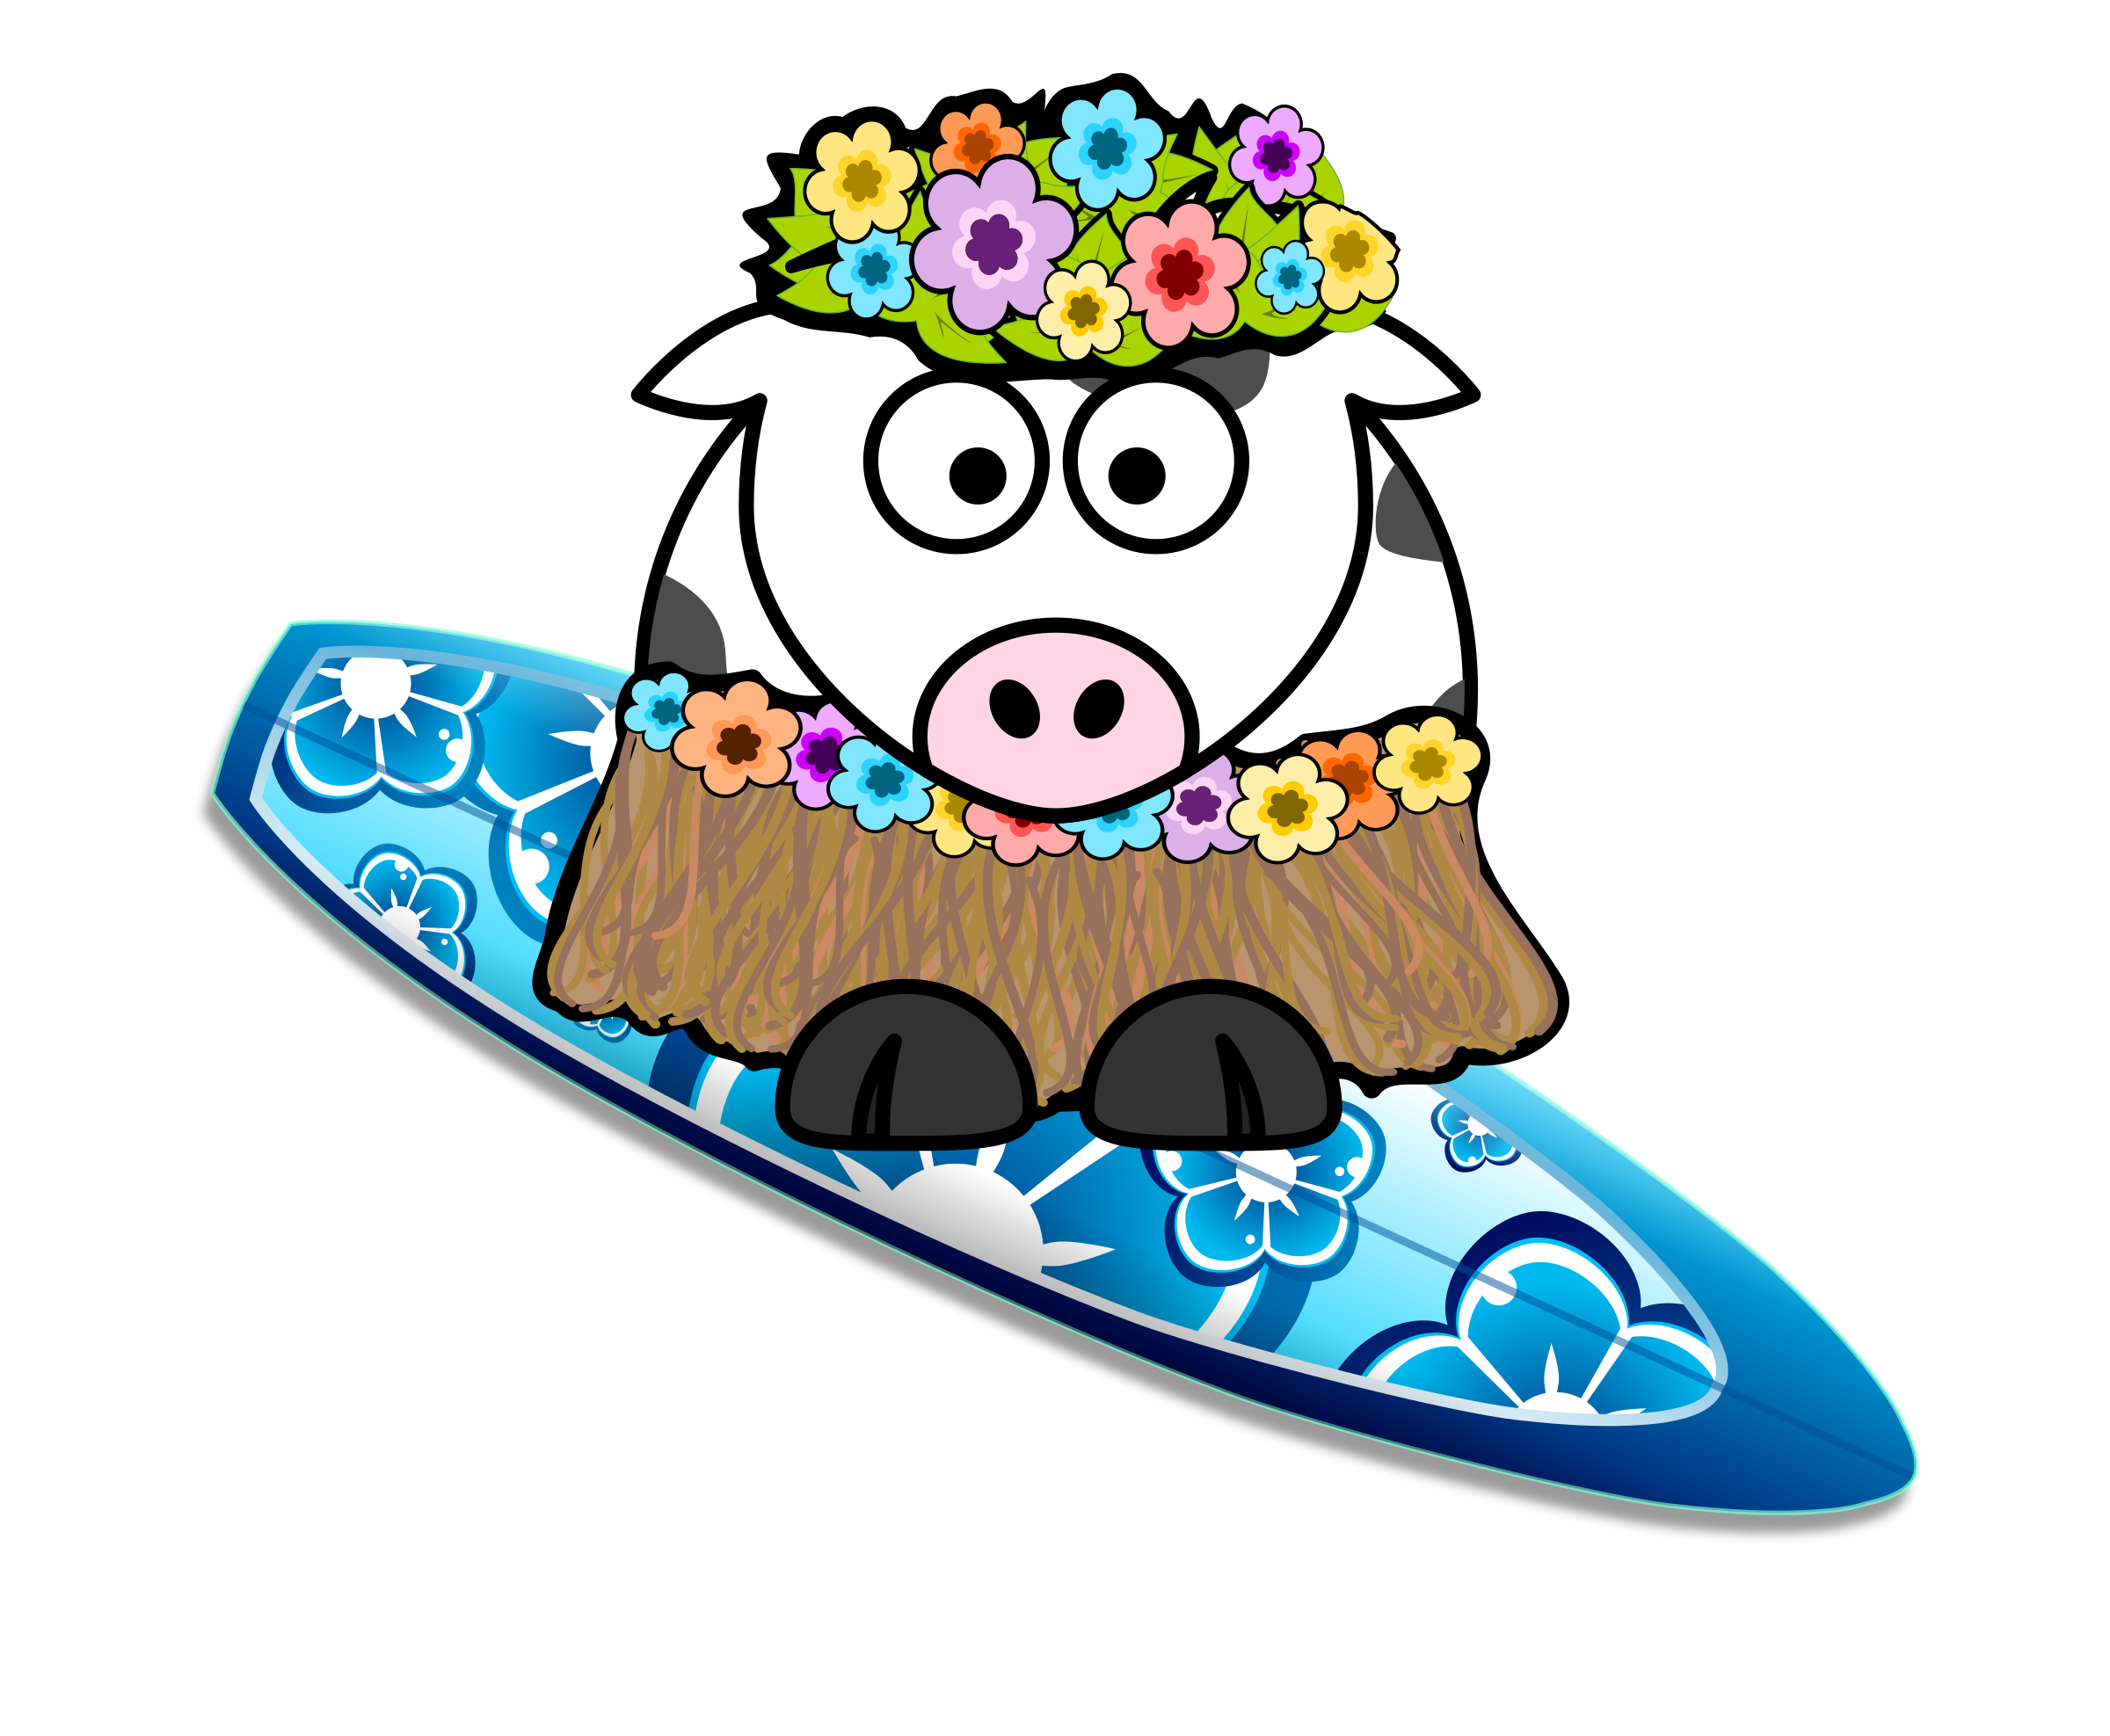 Surfer Girl Cow by KAMC